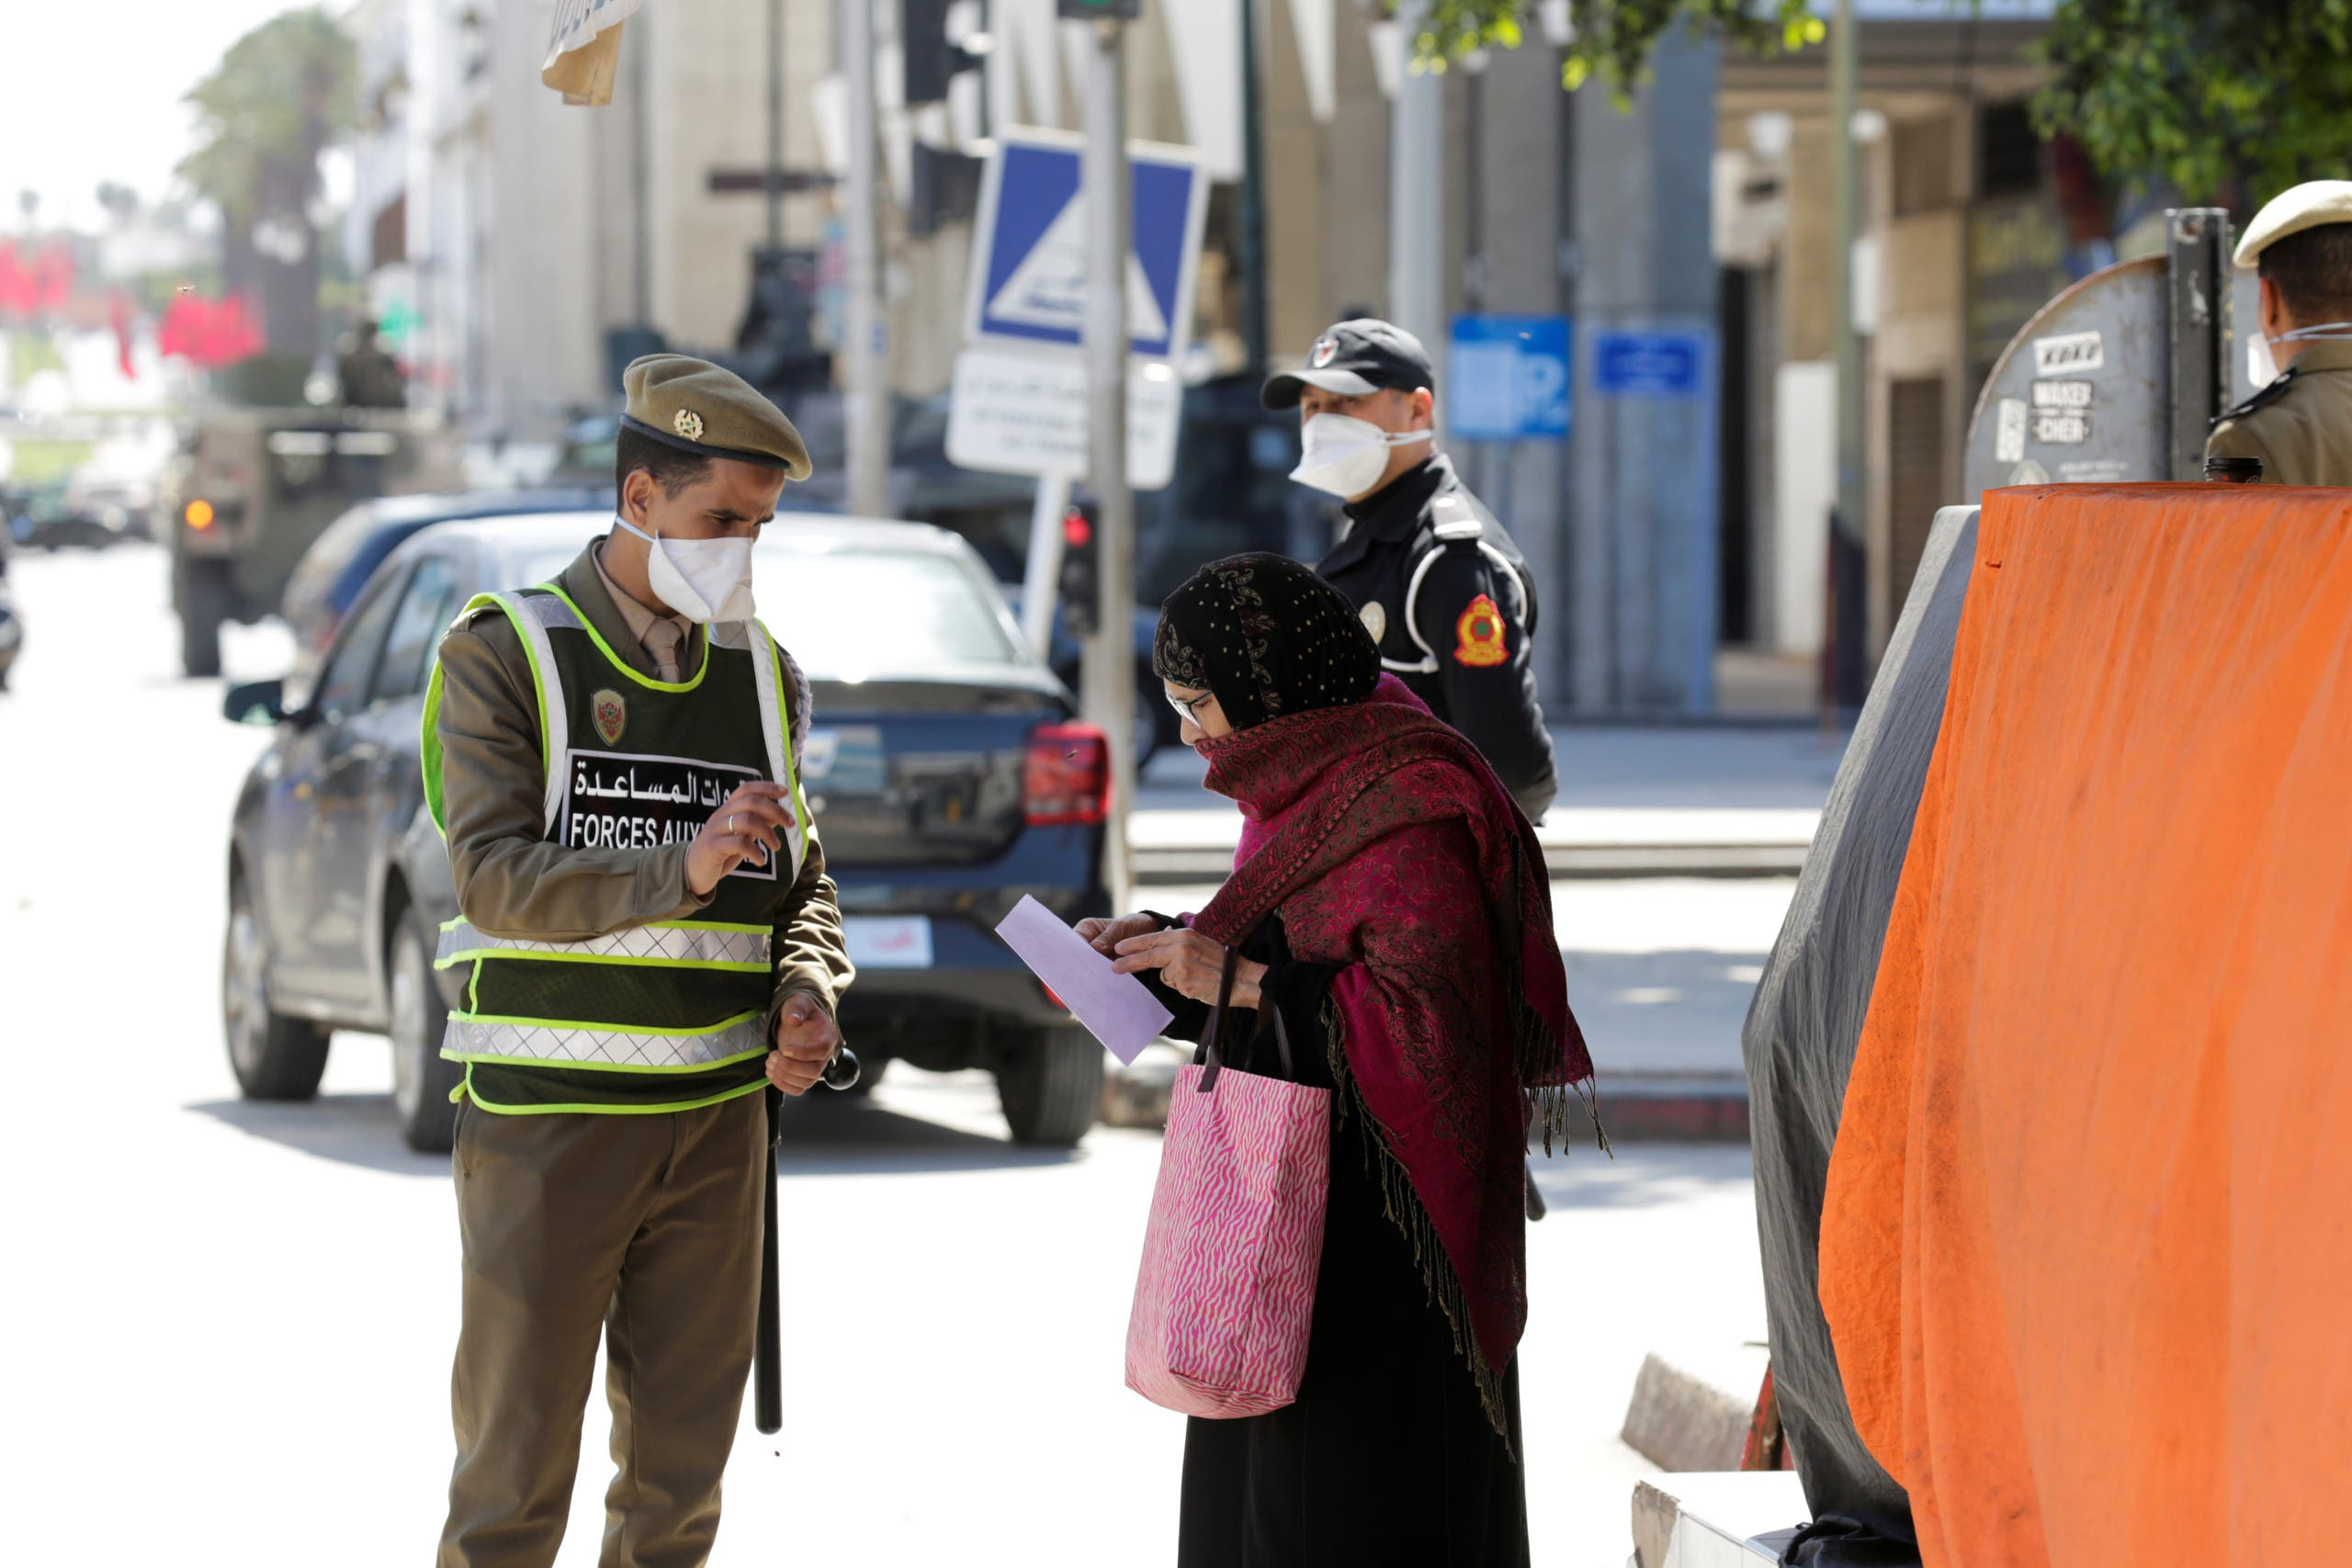 Police and army officers patrol streets following the coronavirus outbreak in Rabat, Morocco. (Reuters)